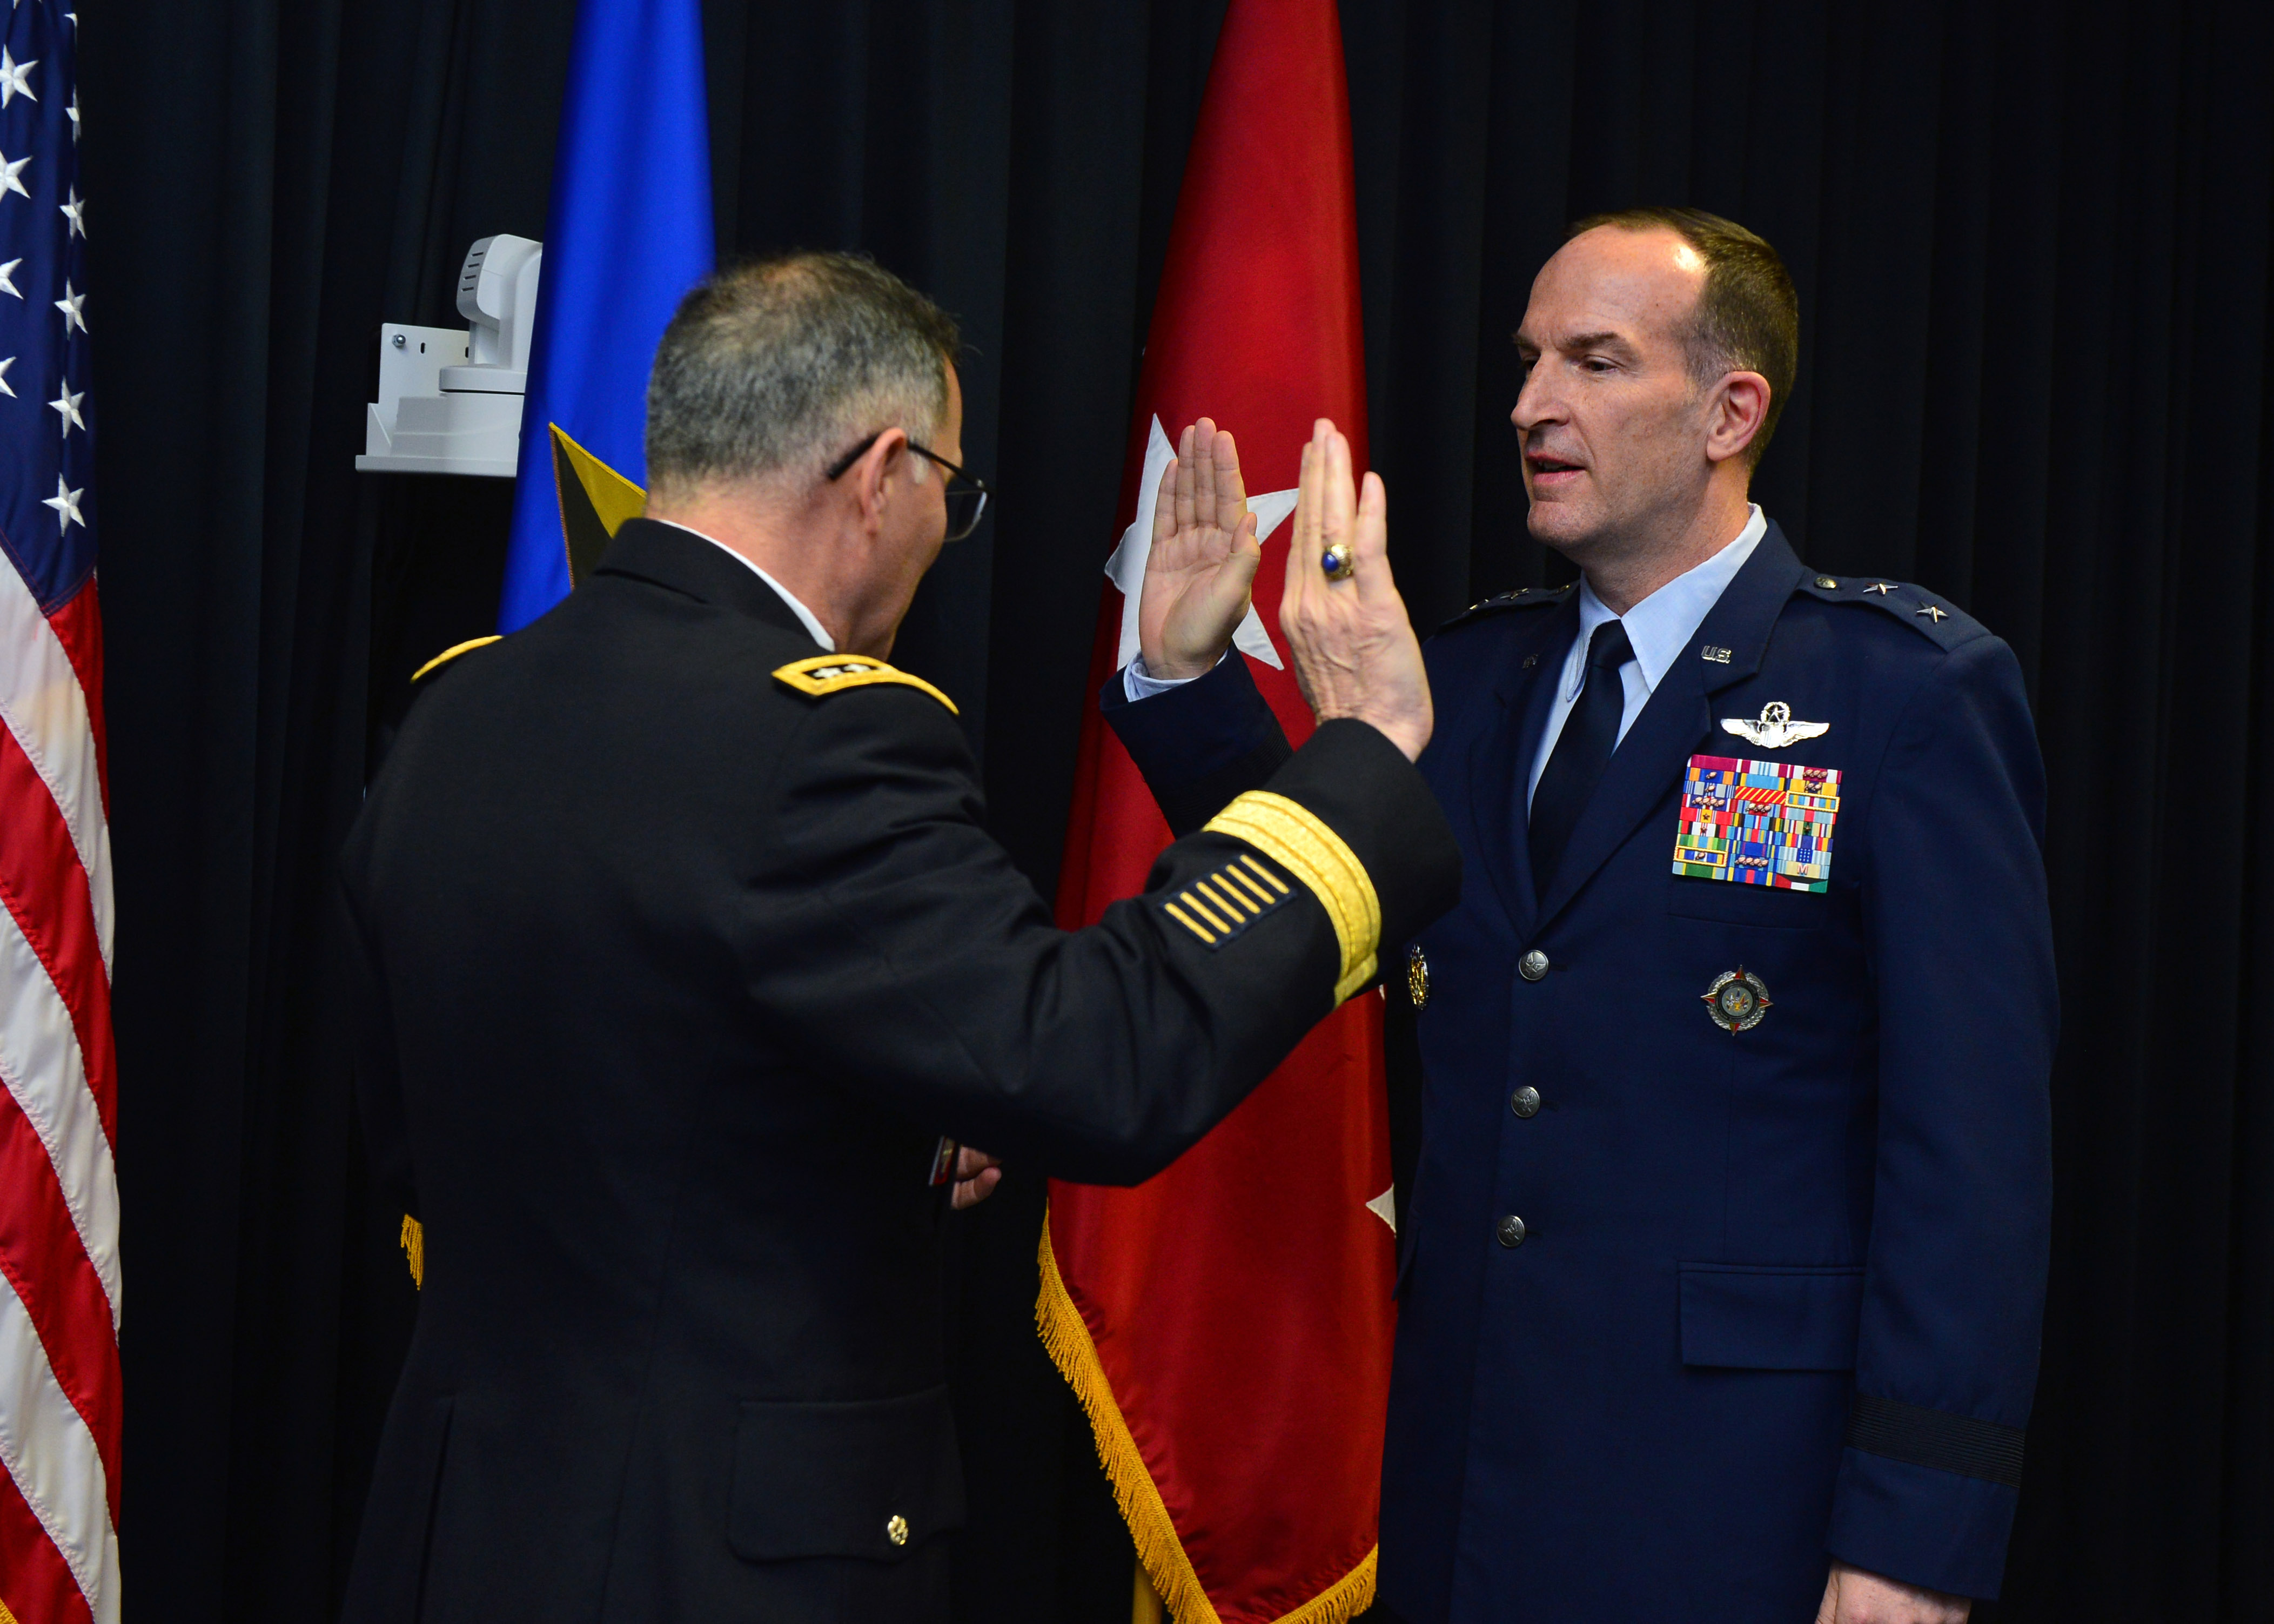 Gen. Curtis M. Scaparrotti, left, U.S. European Command commander, and Brig. Gen. John P. Healy, Director of Exercises and Assessments and Advisor on Reserve Component Affairs for U.S. EUCOM, recite the Oath of Office during Healy's promotion ceremony in Stuttgart, Germany on Dec.14, 2018. Healy was promoted to the rank of major general in the U.S. Air Force.